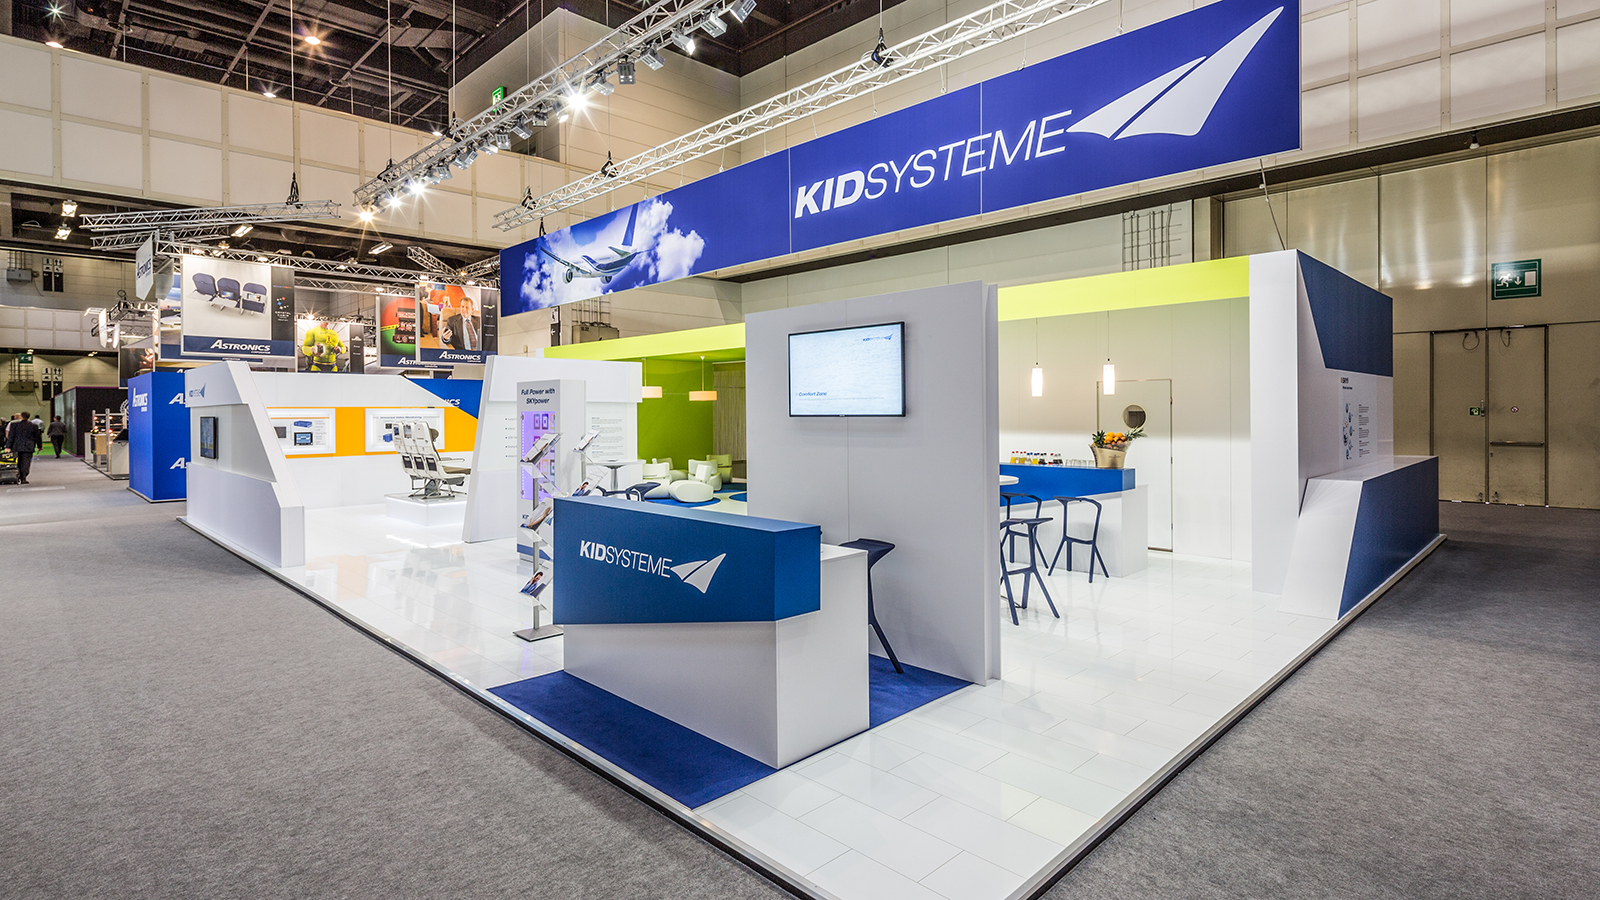 KID Systeme<br>97 m²<br>Aircraft Interiors Expo